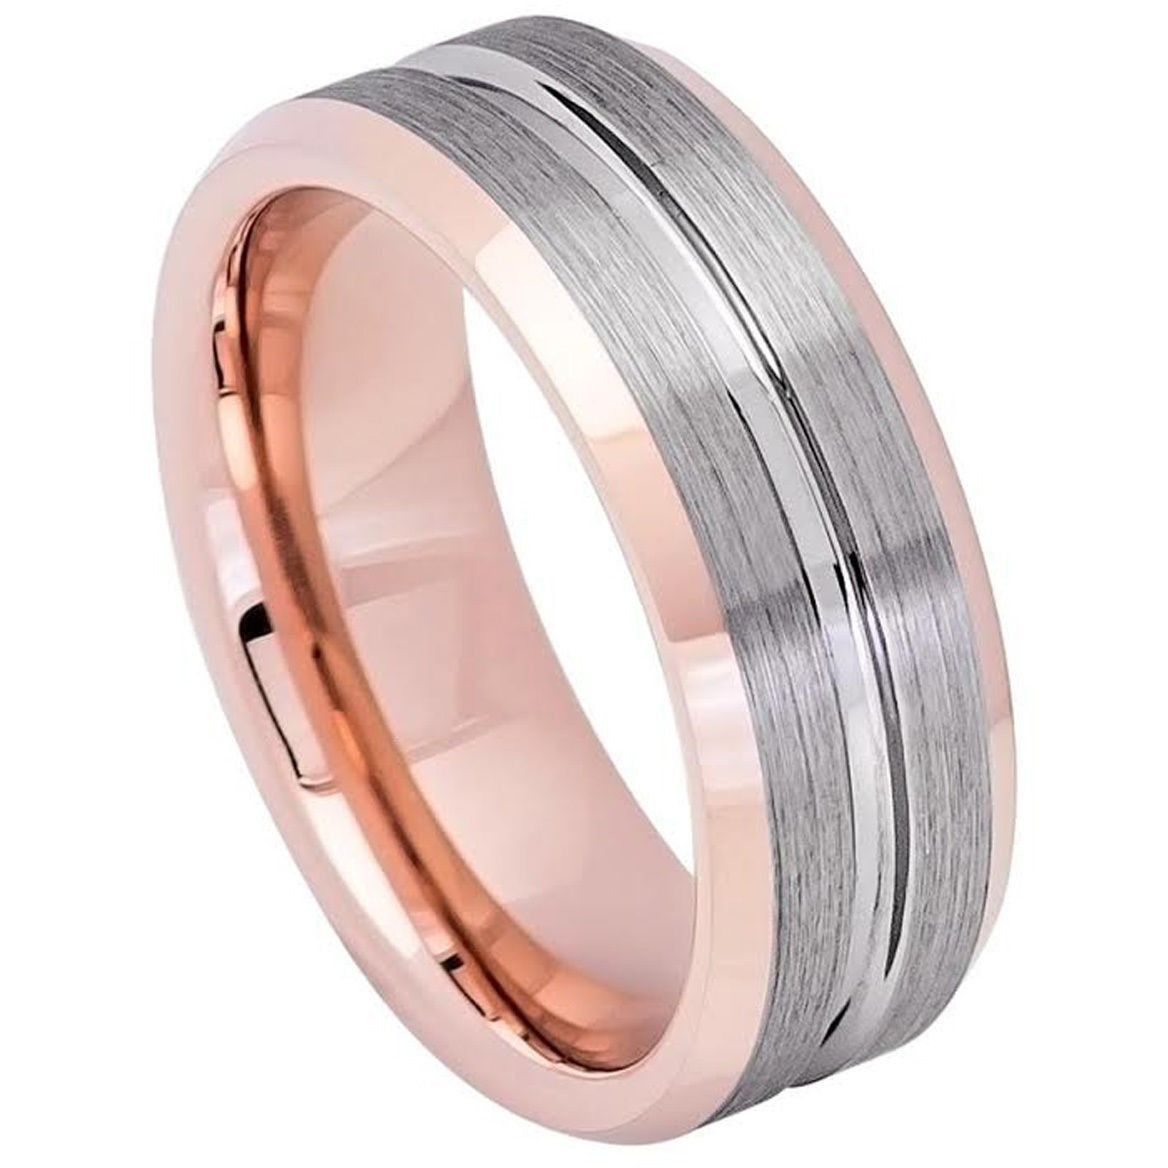 8mm Tungsten Ring Men Women Wedding Band TR743 | Products ...